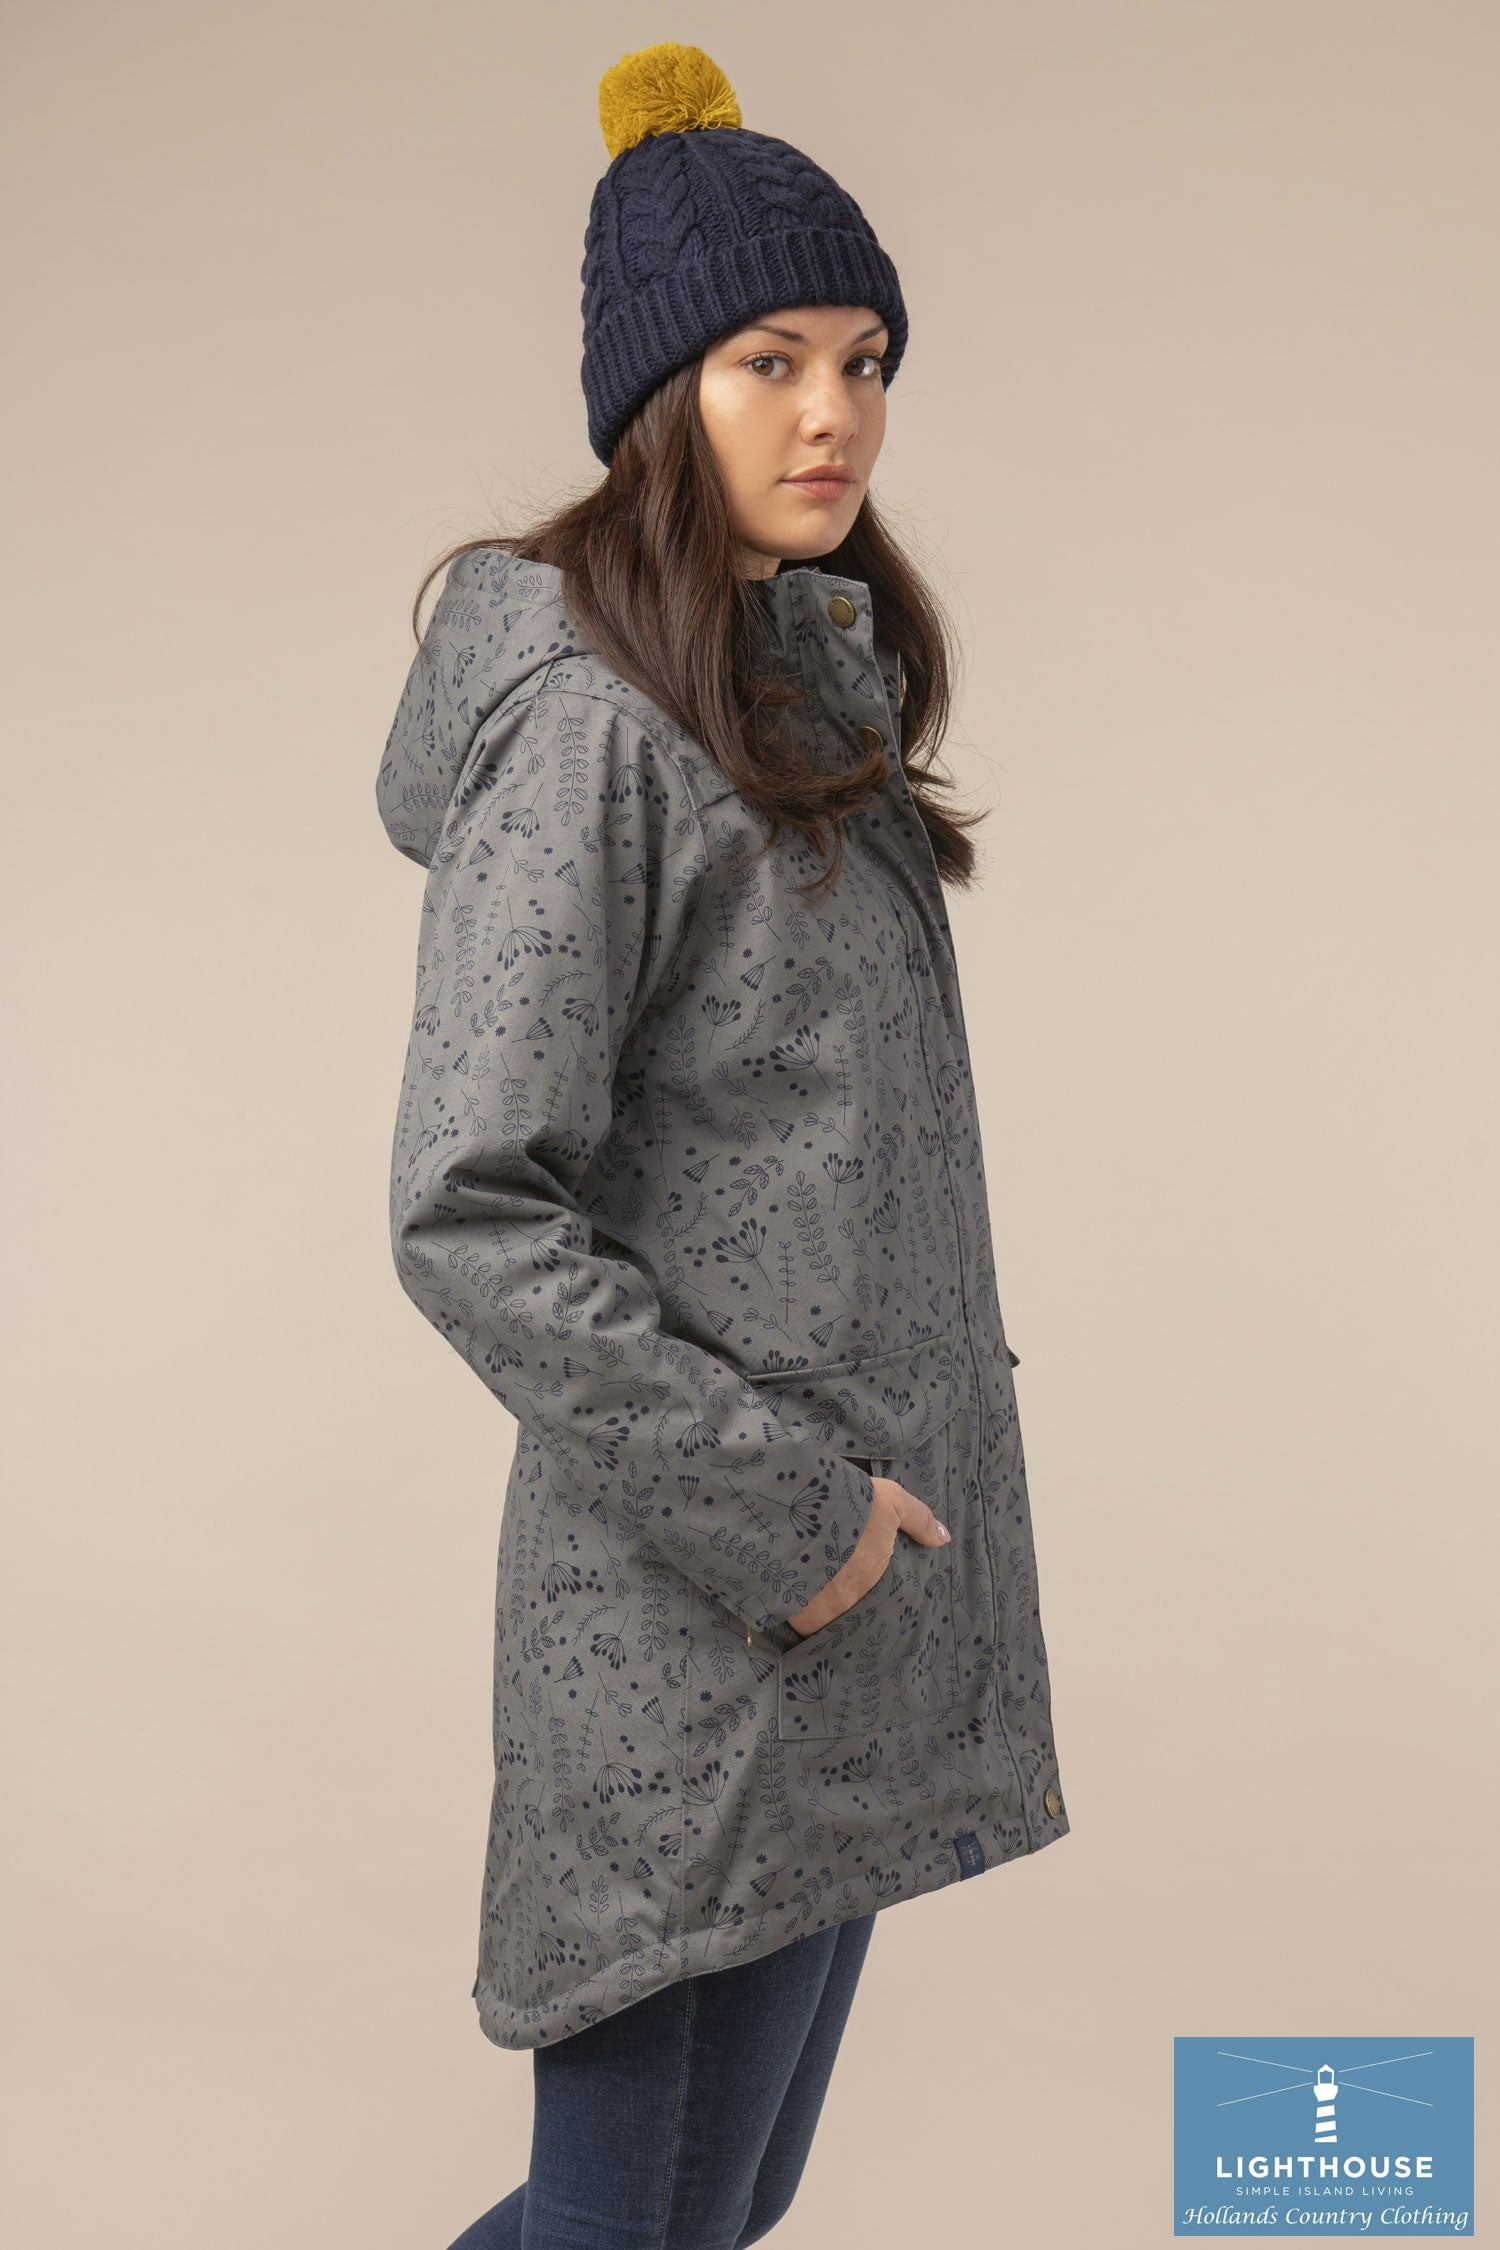 Side view showing Parka coat tail